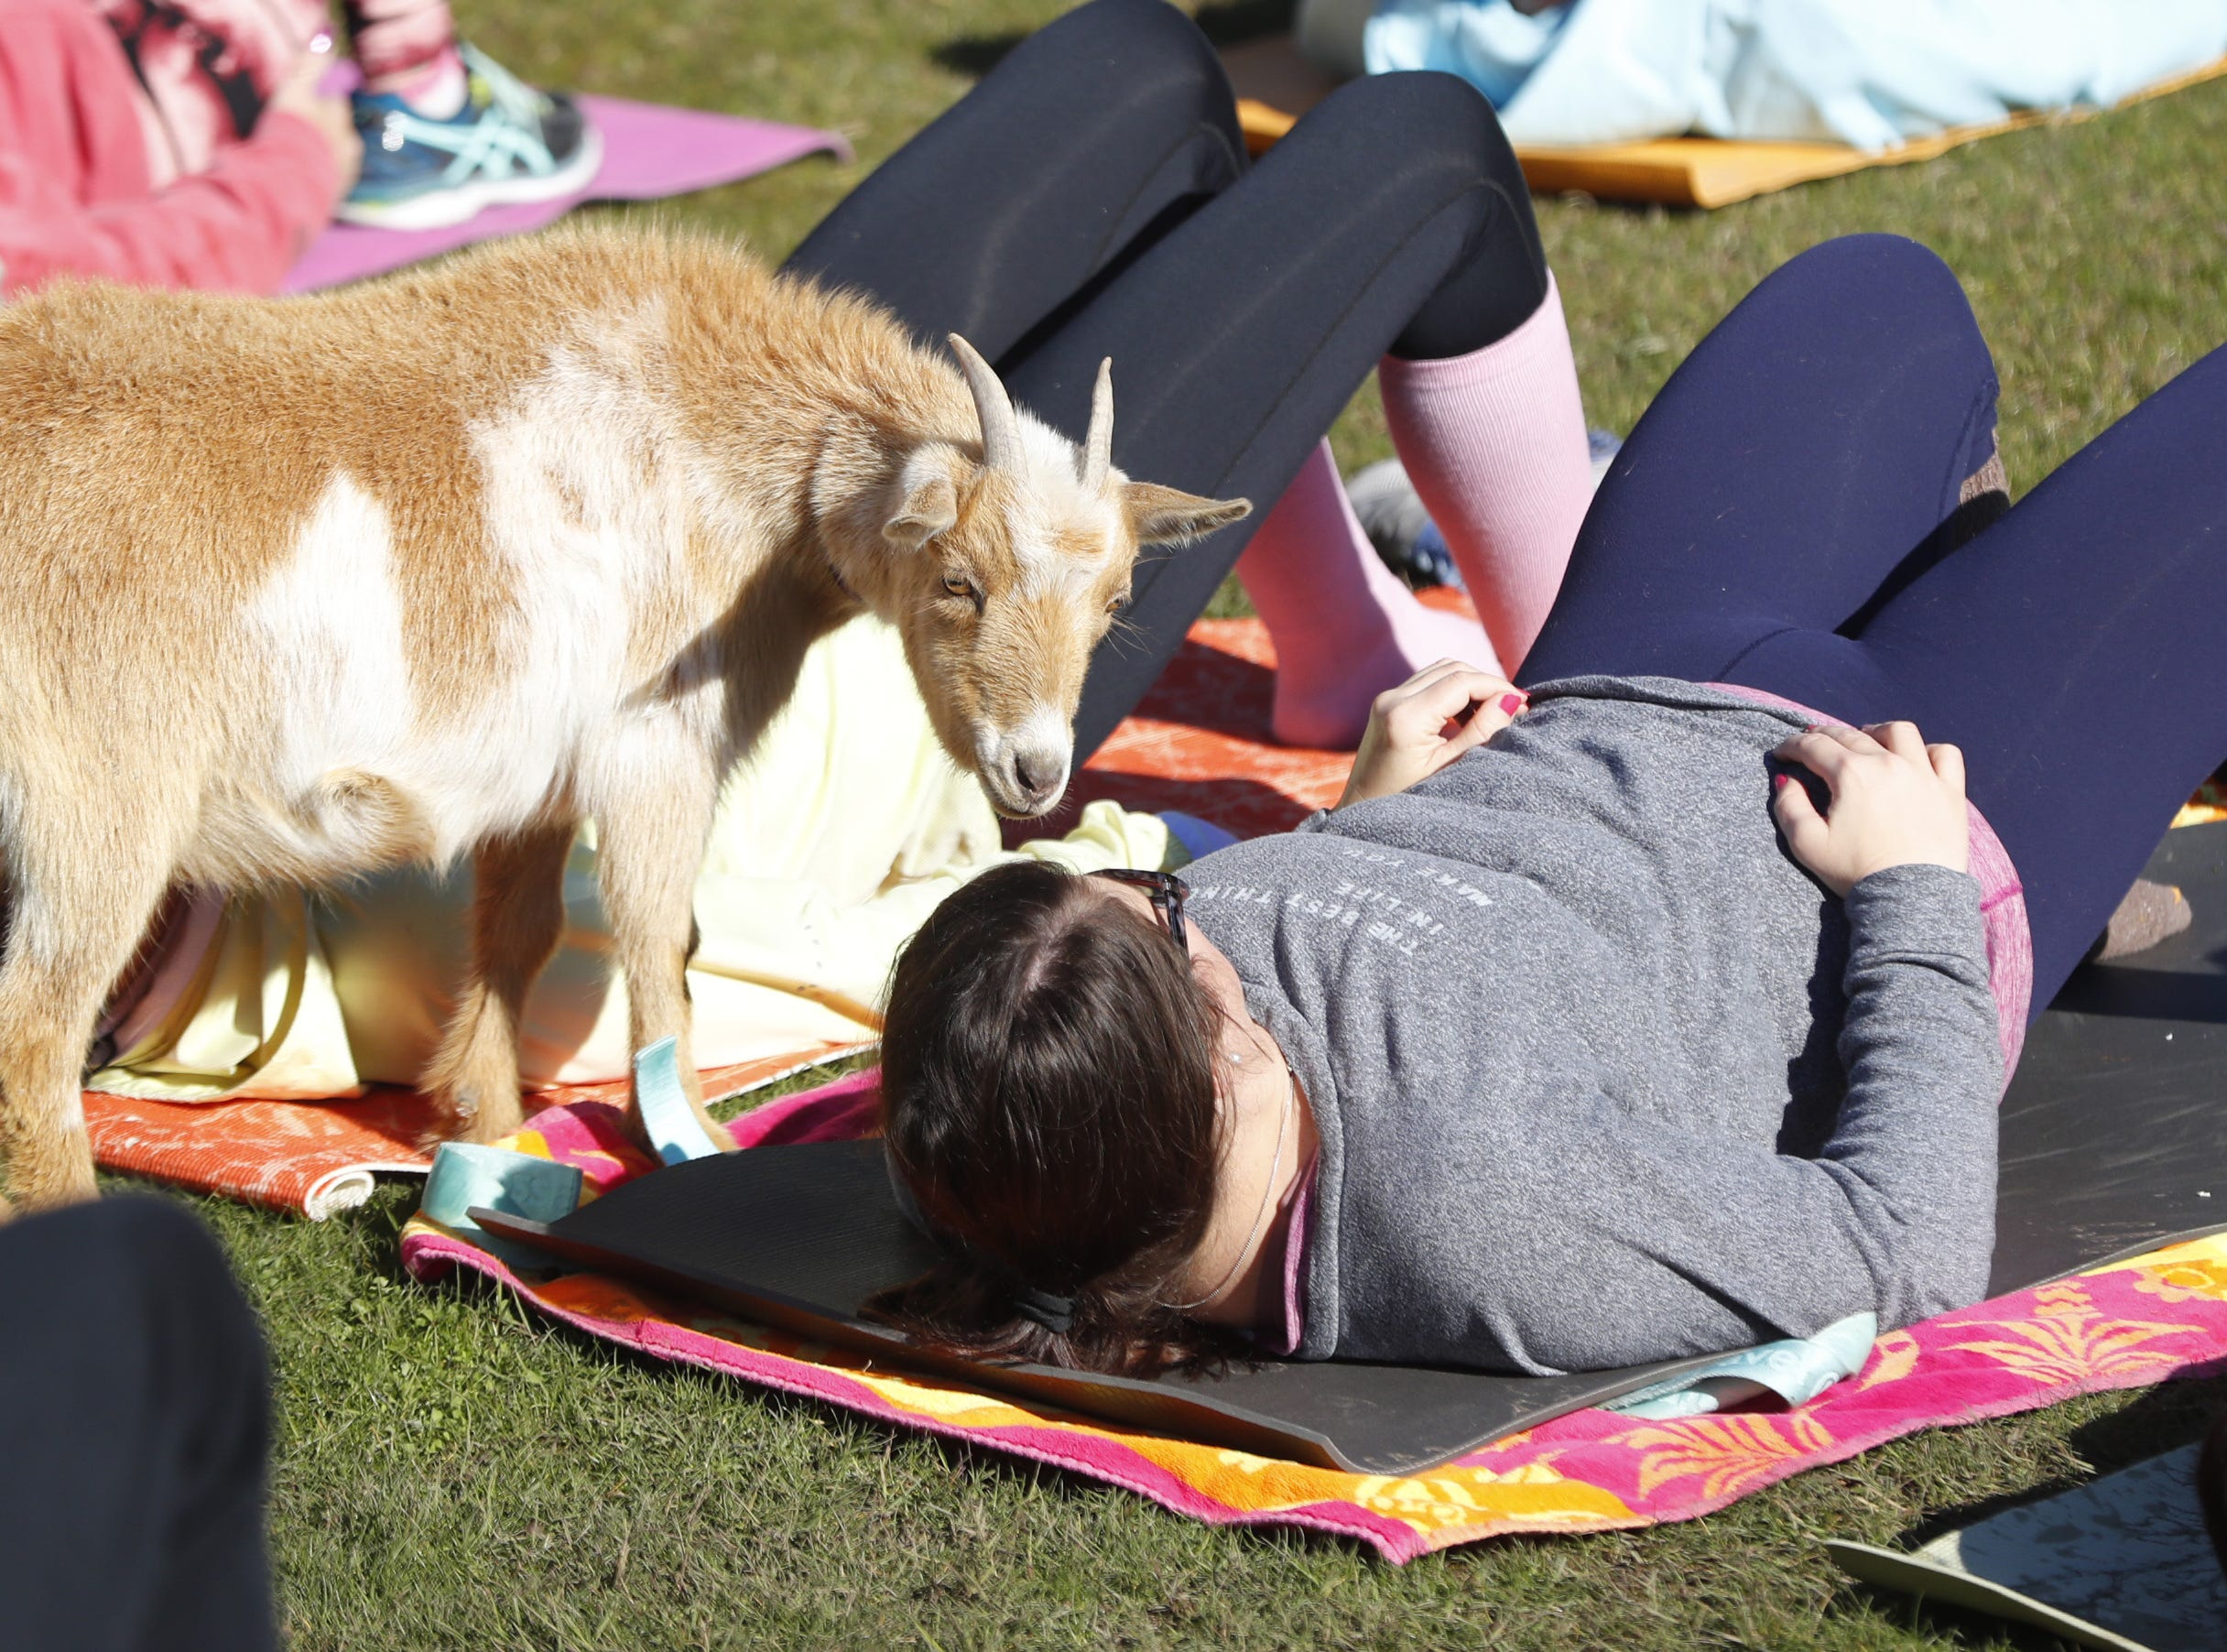 A goat inspects a person doing yoga during a Guinness World Record goat yoga attempt at the Mesa Amphitheatre in Mesa, Ariz. on Feb. 23, 2019.